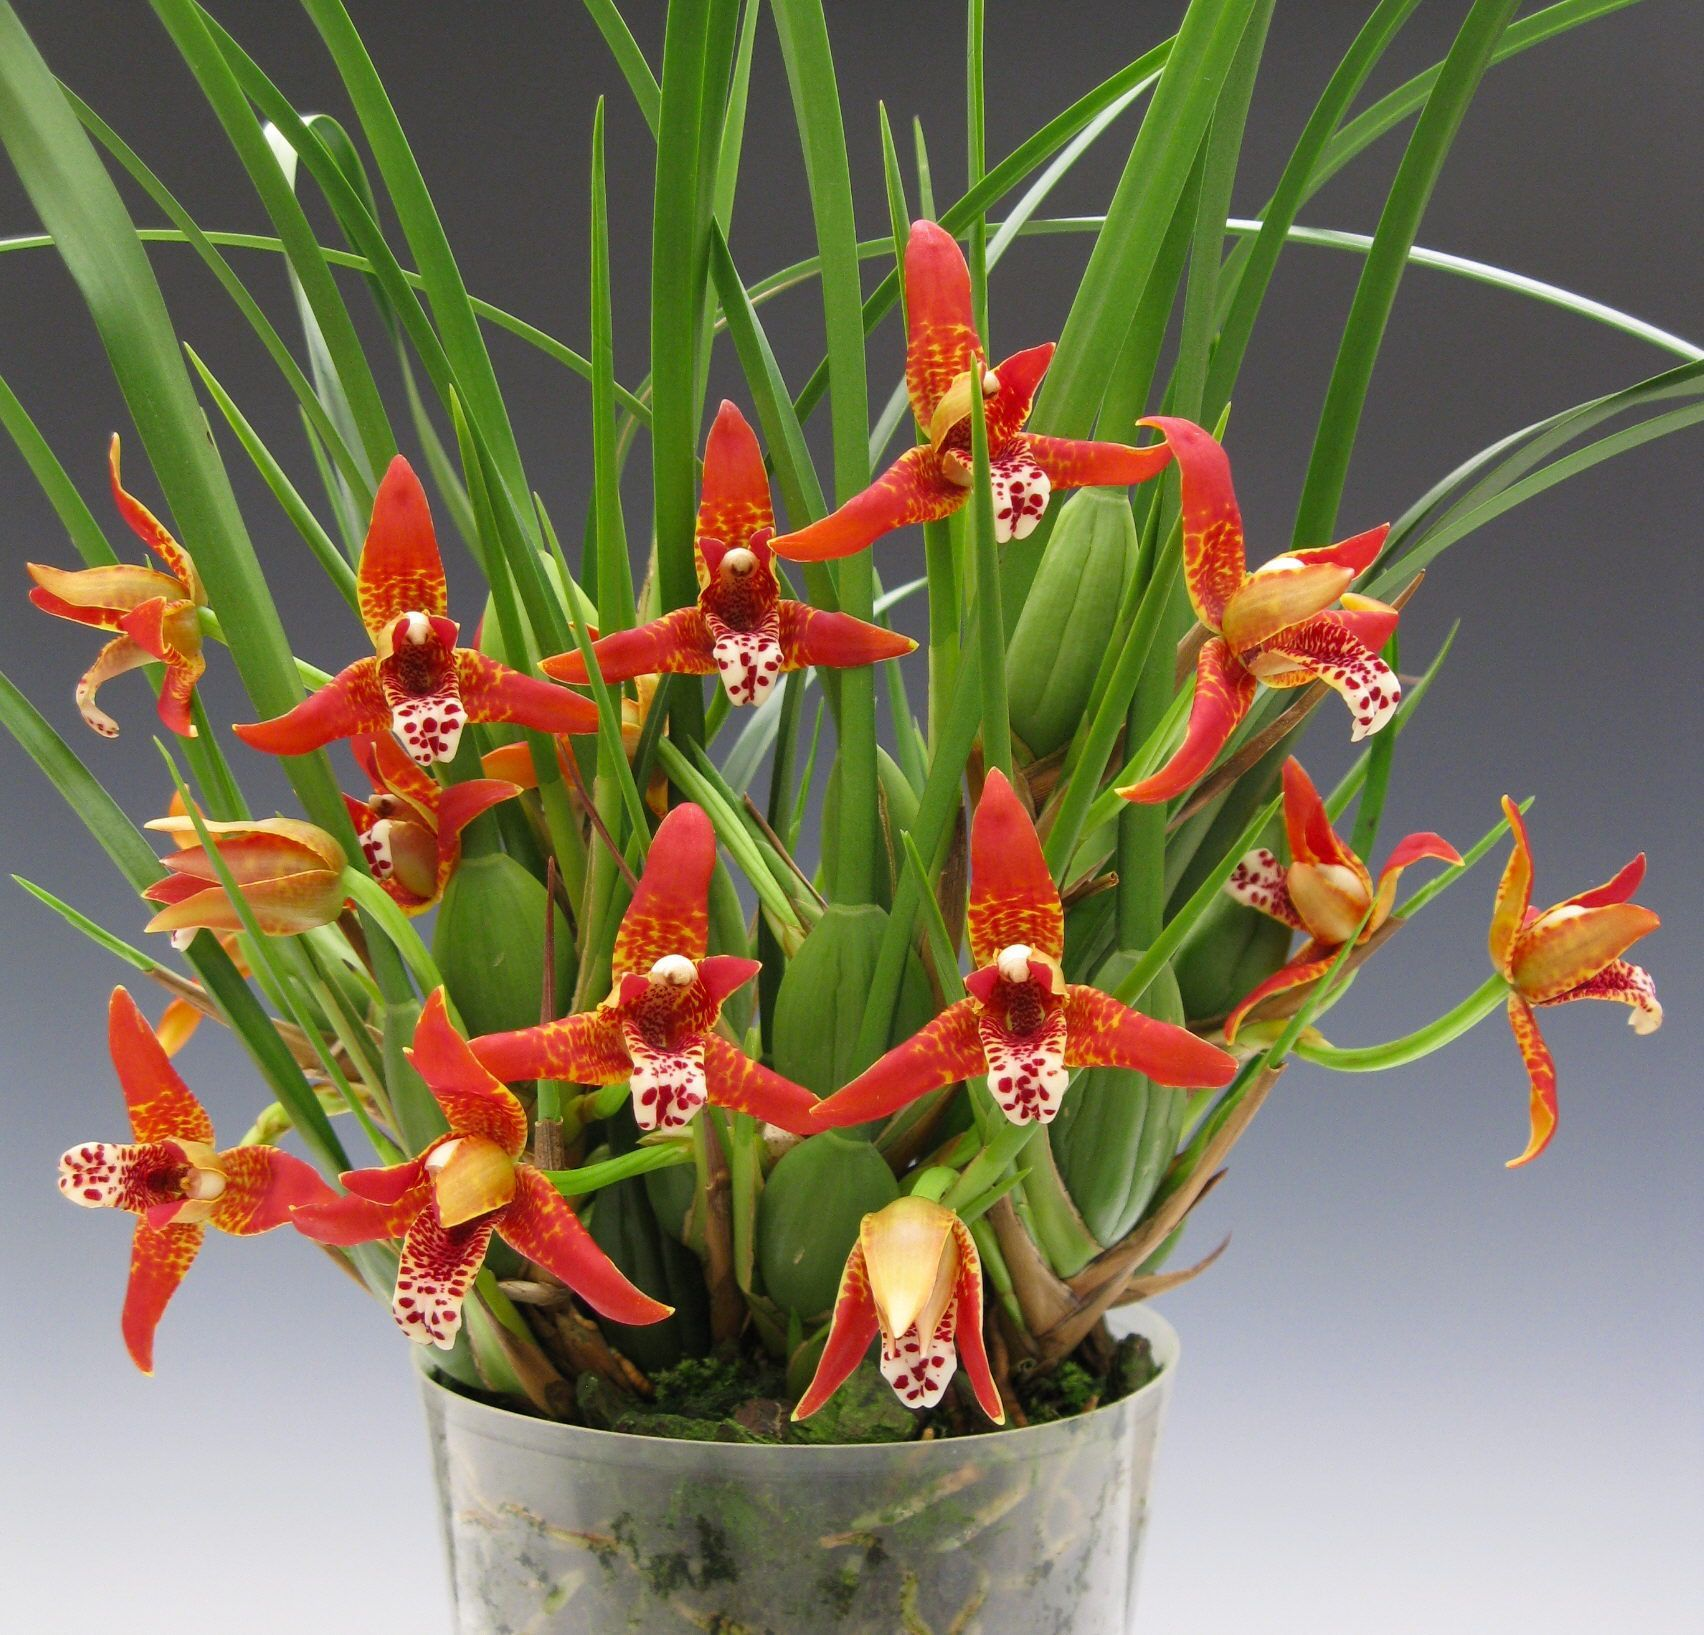 Maxillara Tenouifolia The Orchid Flowers That Smell Like Coconut Orchids Beautiful Orchids Orchid Flower Orchids